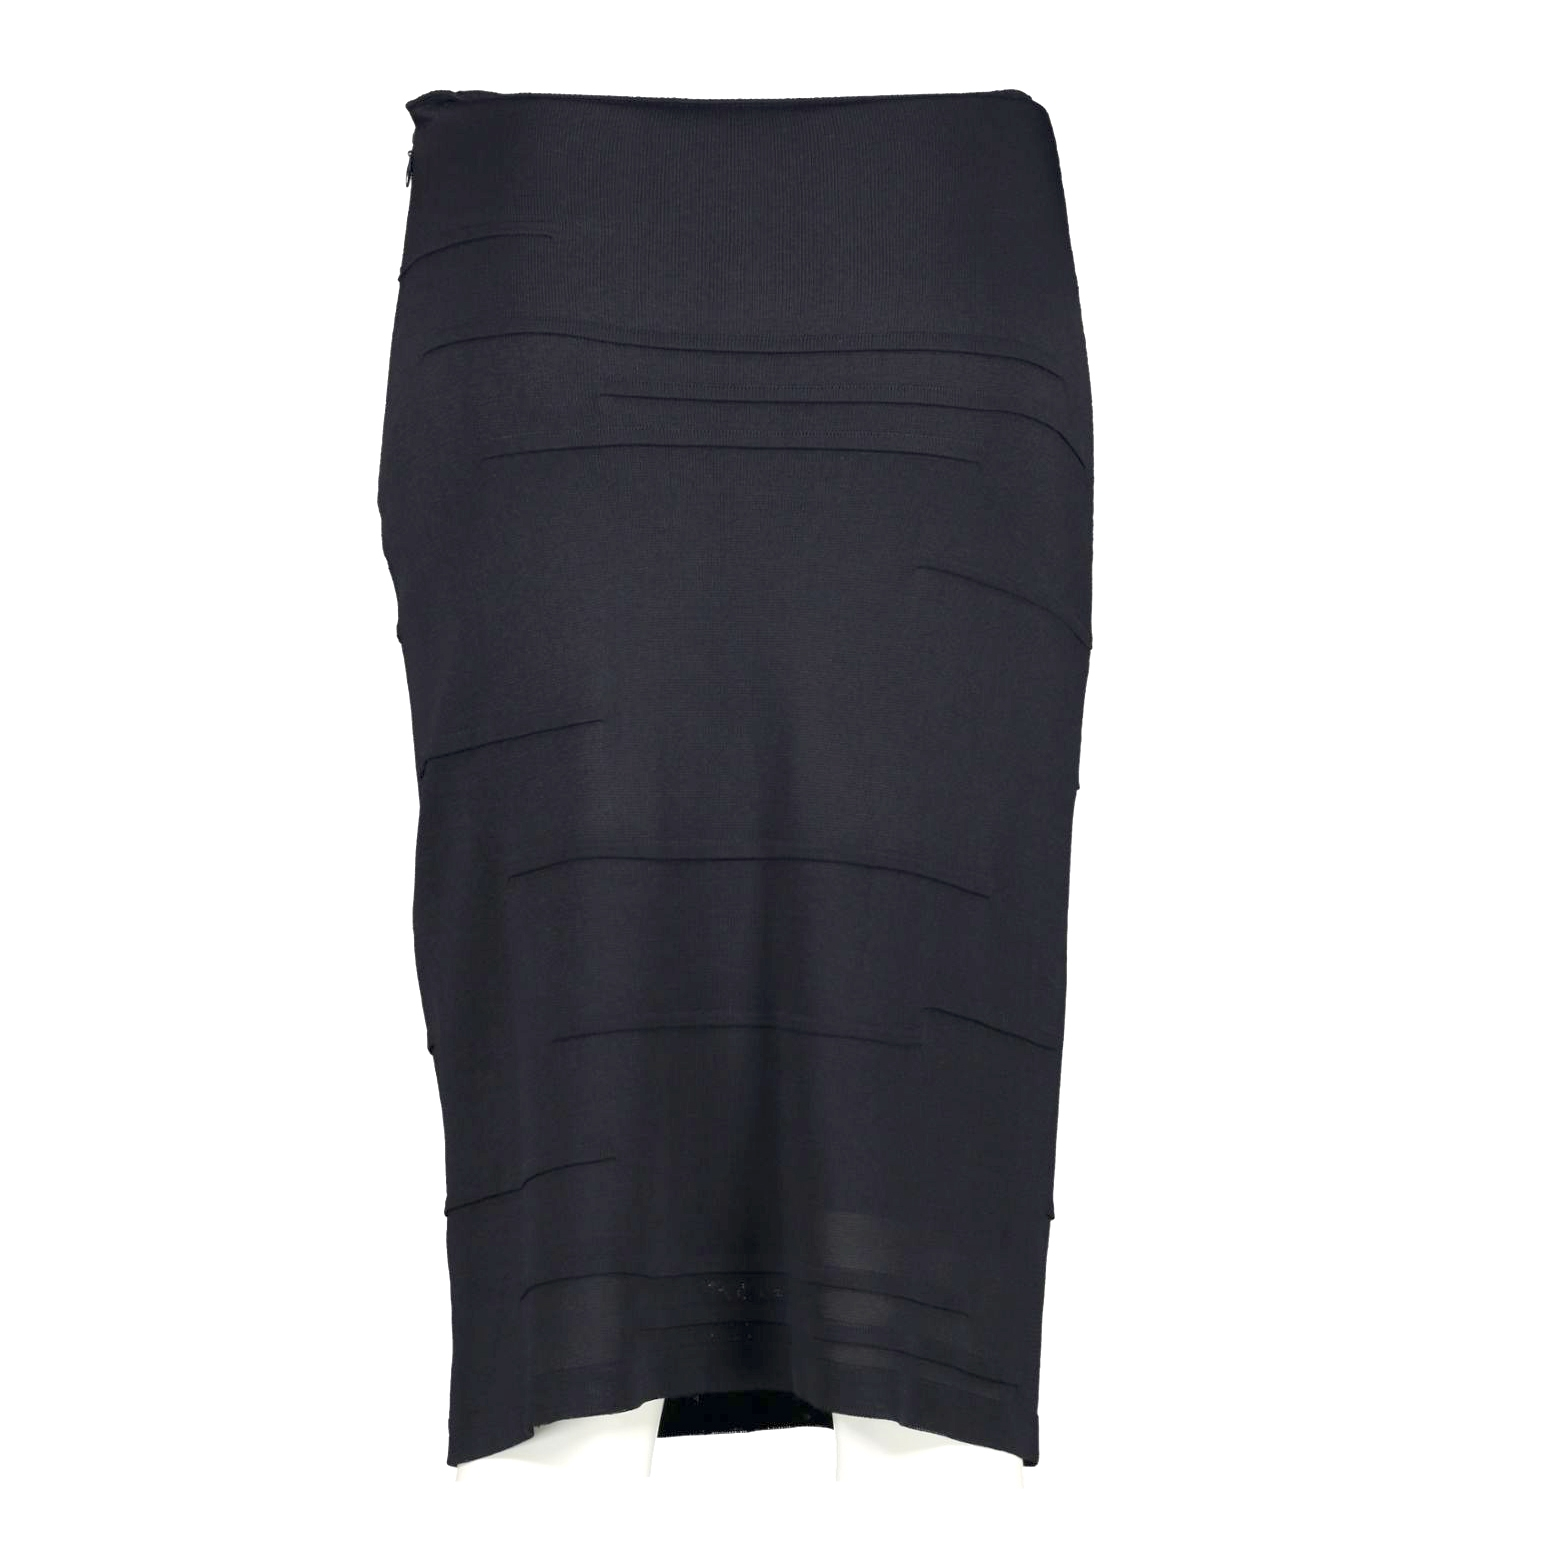 Chanel Blue Pencil Skirt - Size 36 we buy and sell your authentic designer bags online at Labellov